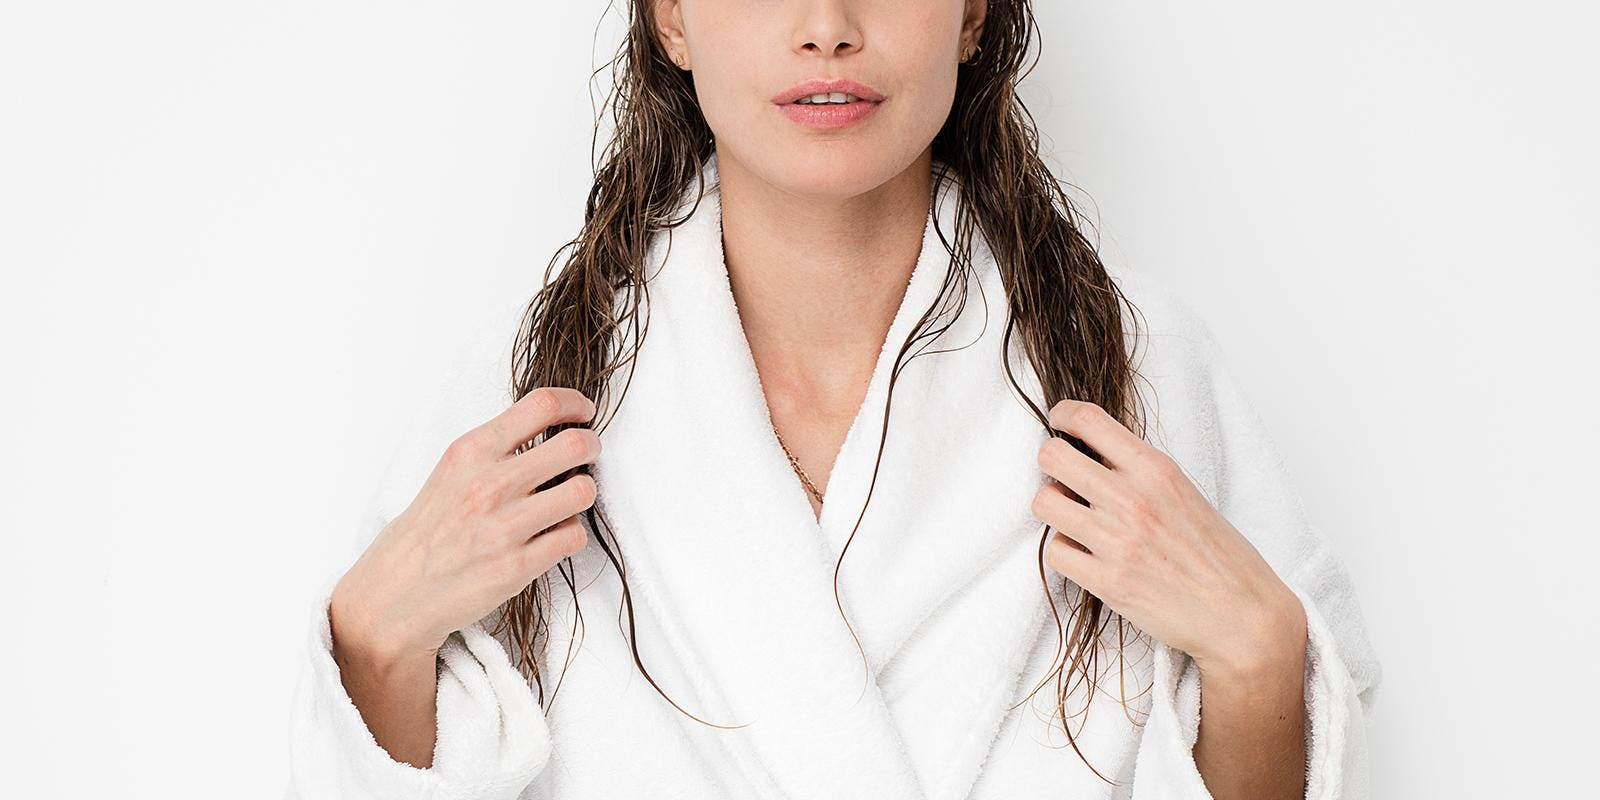 Woman in robe with wet hair